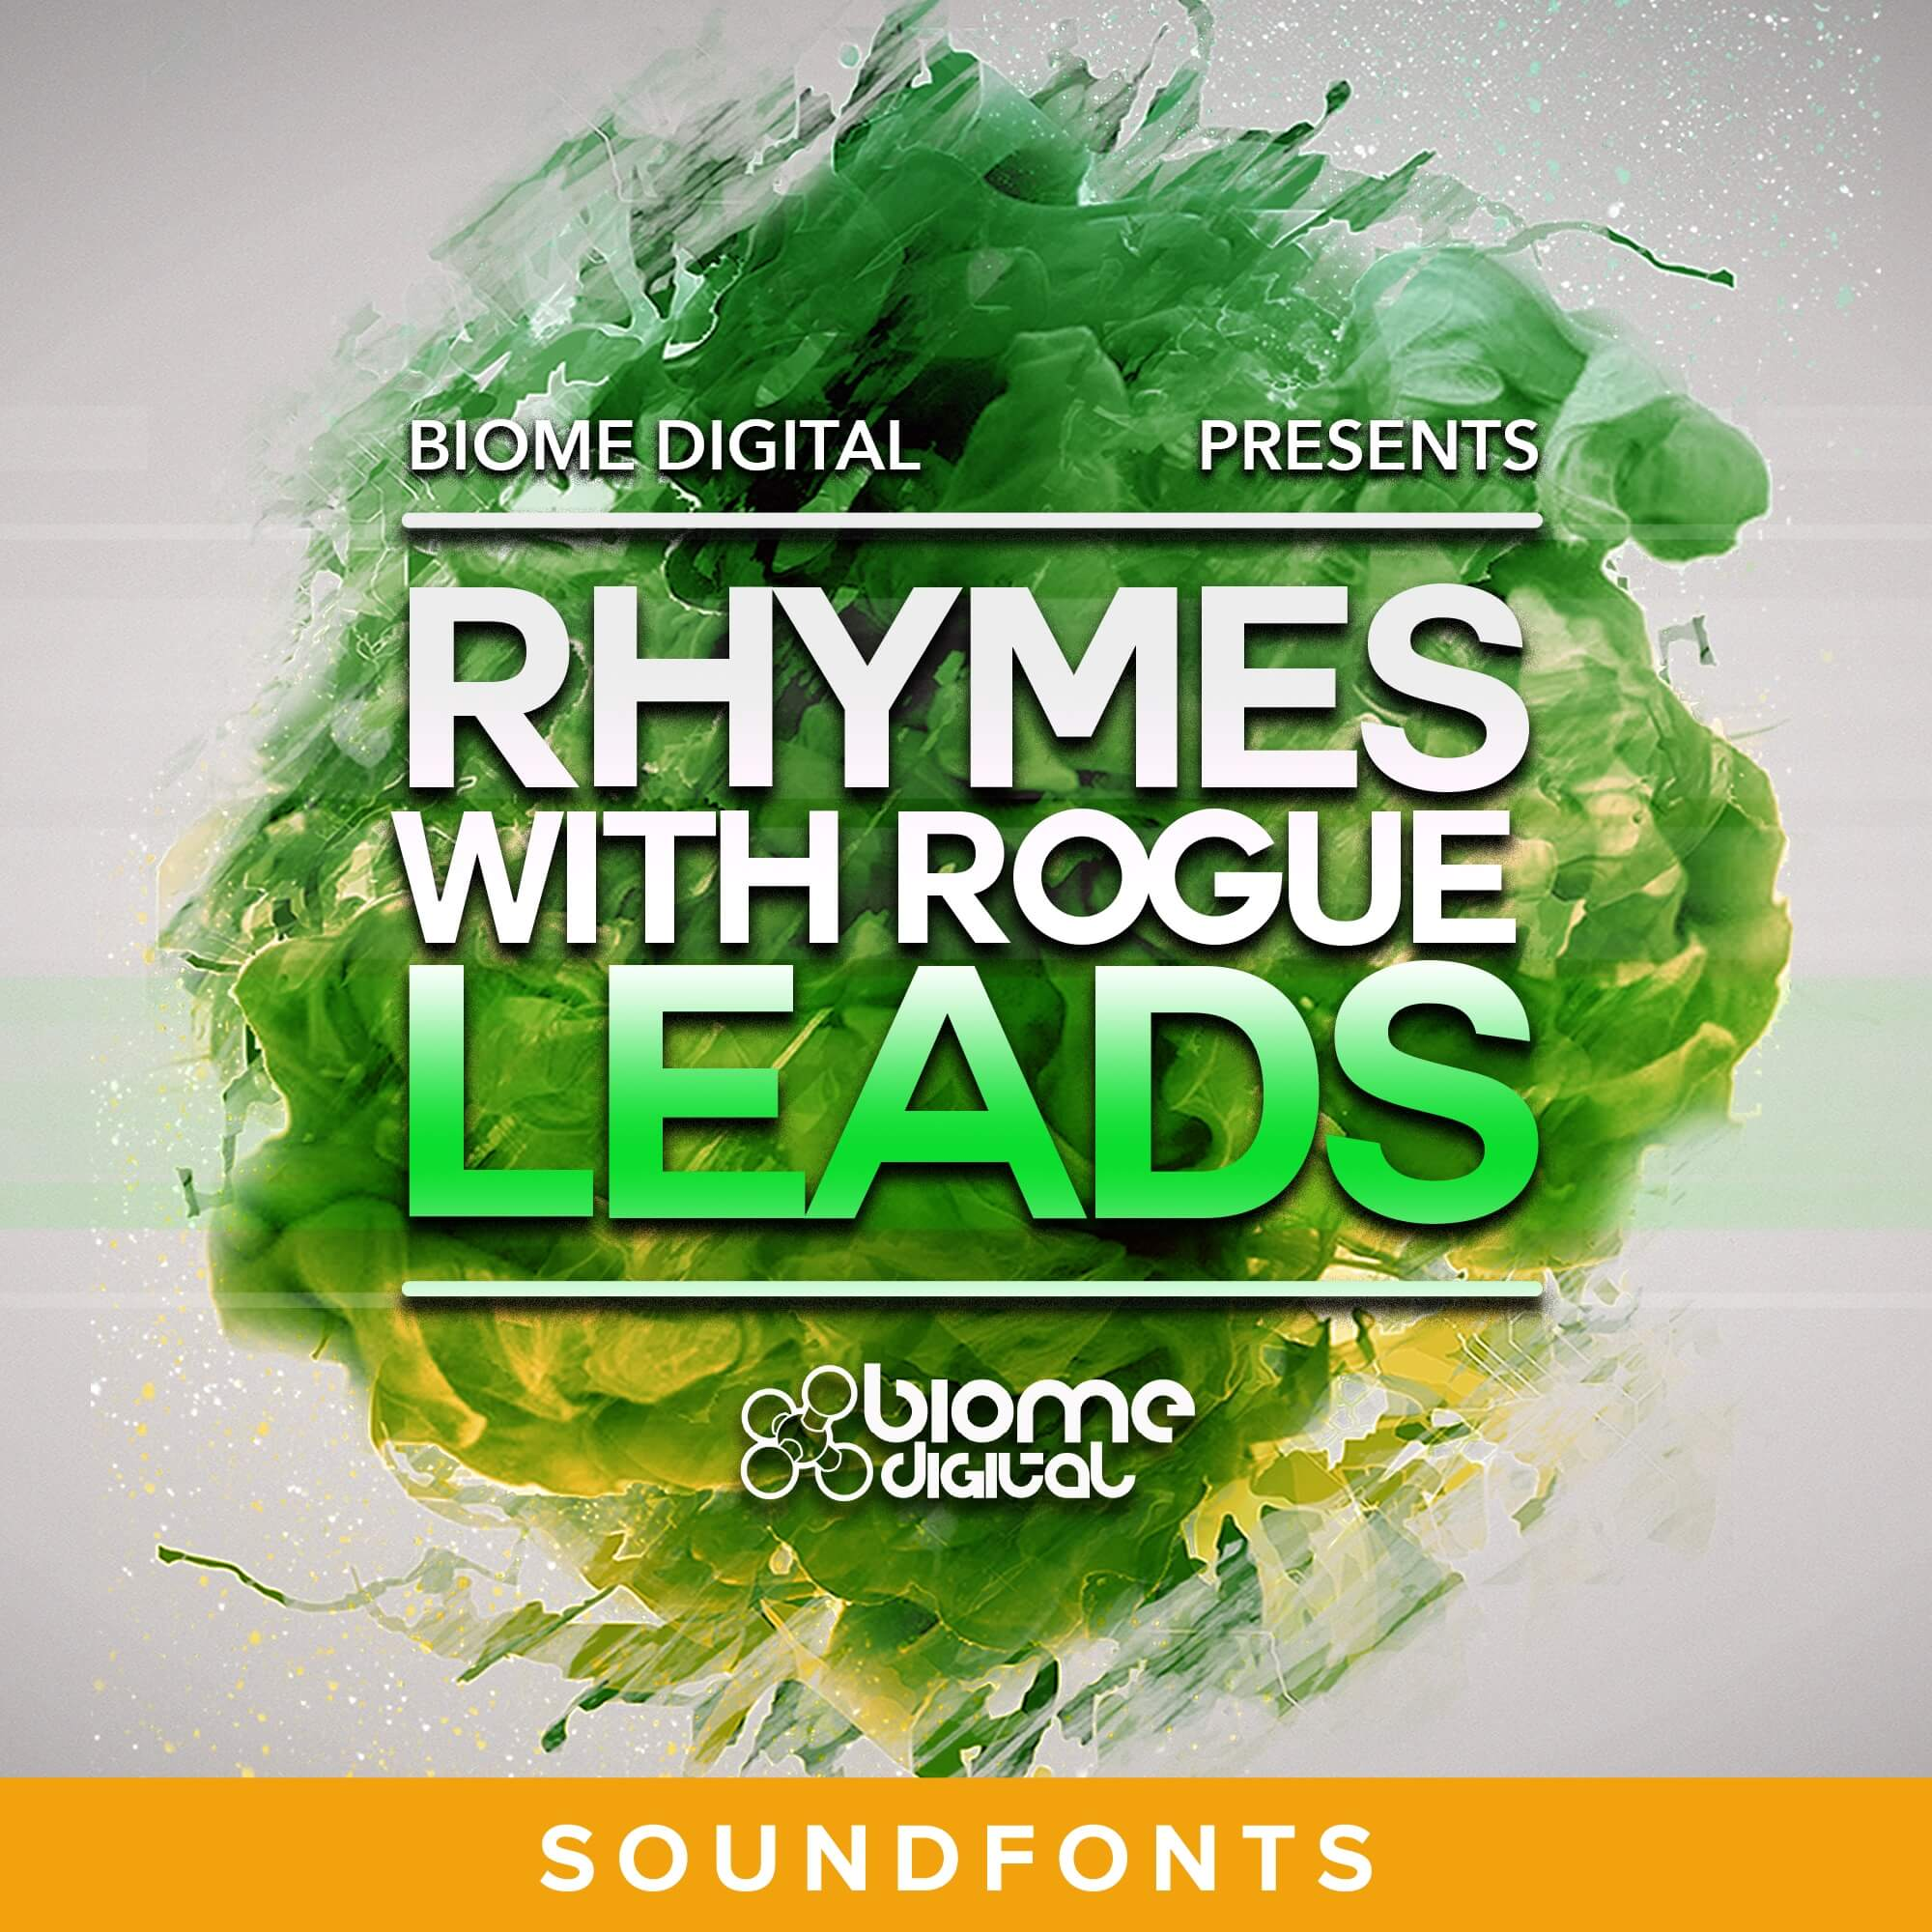 Rhymes With Rogue - Leads (Soundfonts/Zampler) - Free Zampler / Soundfonts